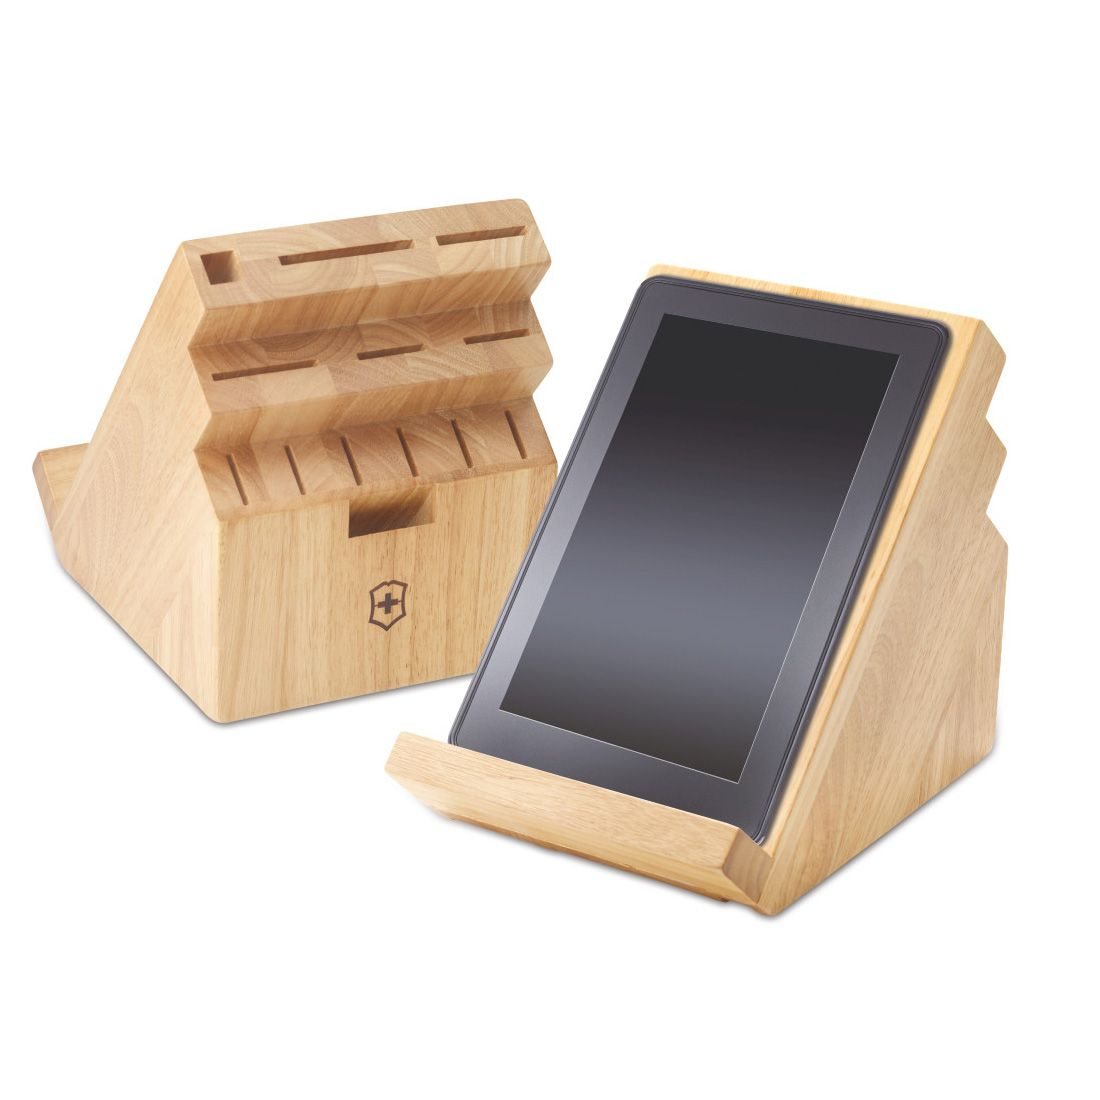 Tablet Halter Kuche Victorinox Swivel Knife Block Ipad Stand Messerblock